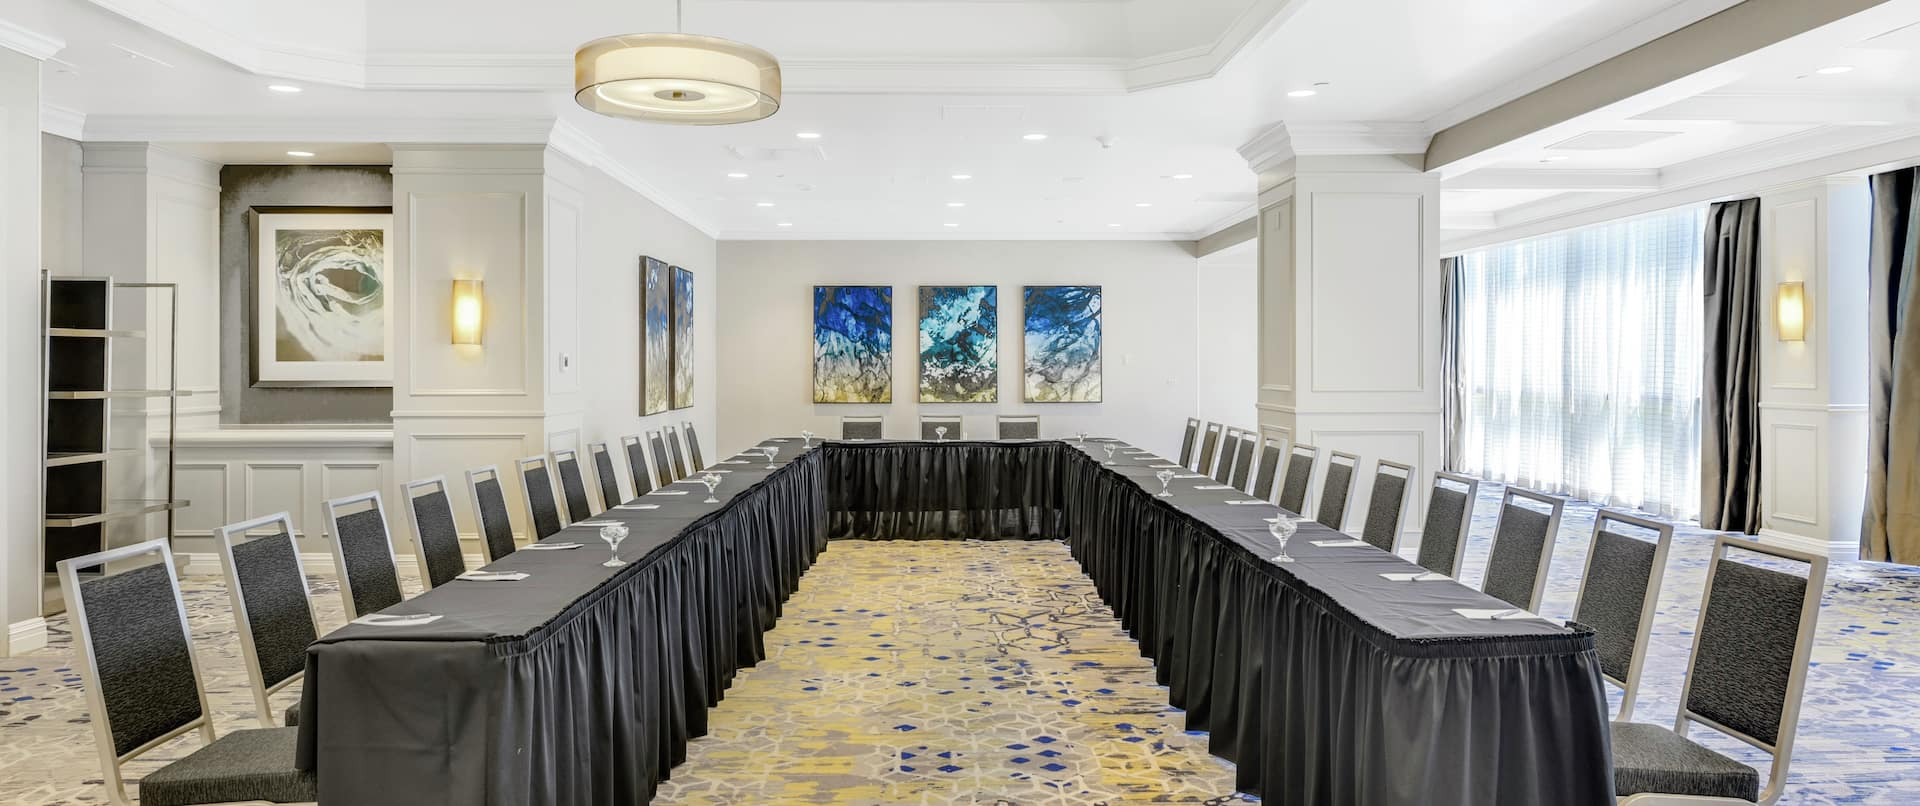 Meeting Room with U-Shaped Table